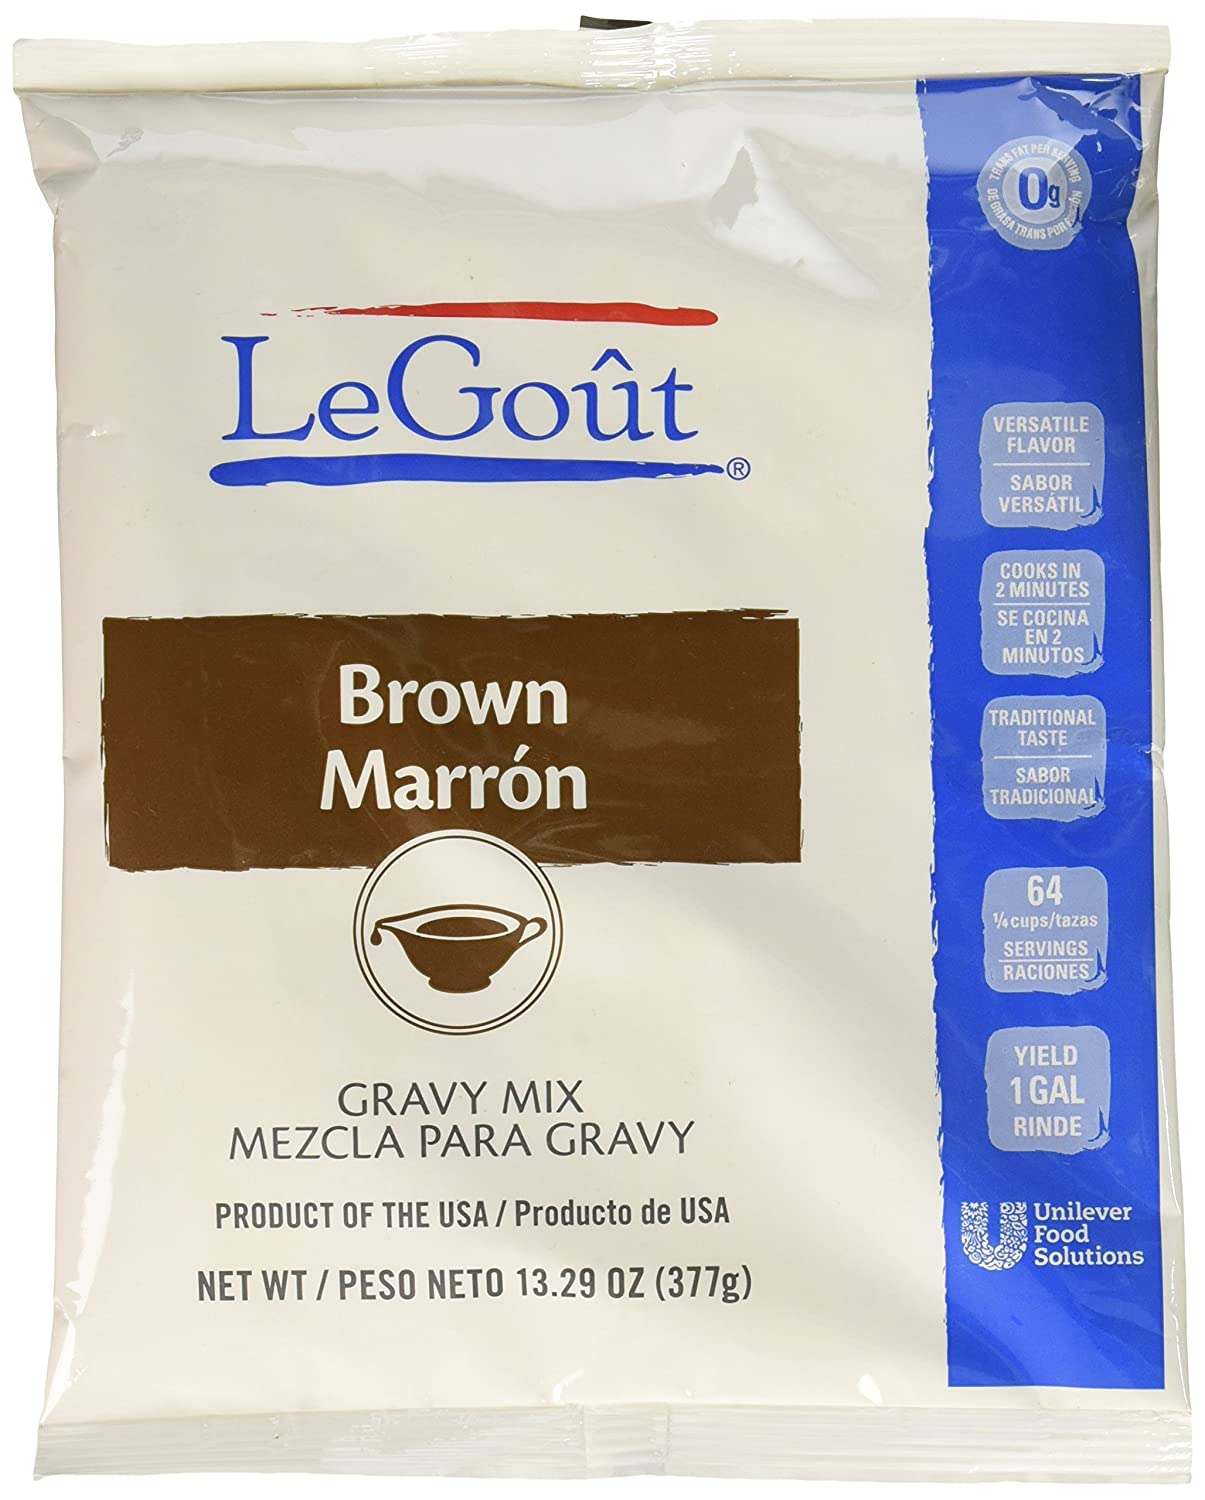 Amazon.com : LeGout Gravy Mix Brown 13.29 oz, Pack of 8 : Grocery & Gourmet Food